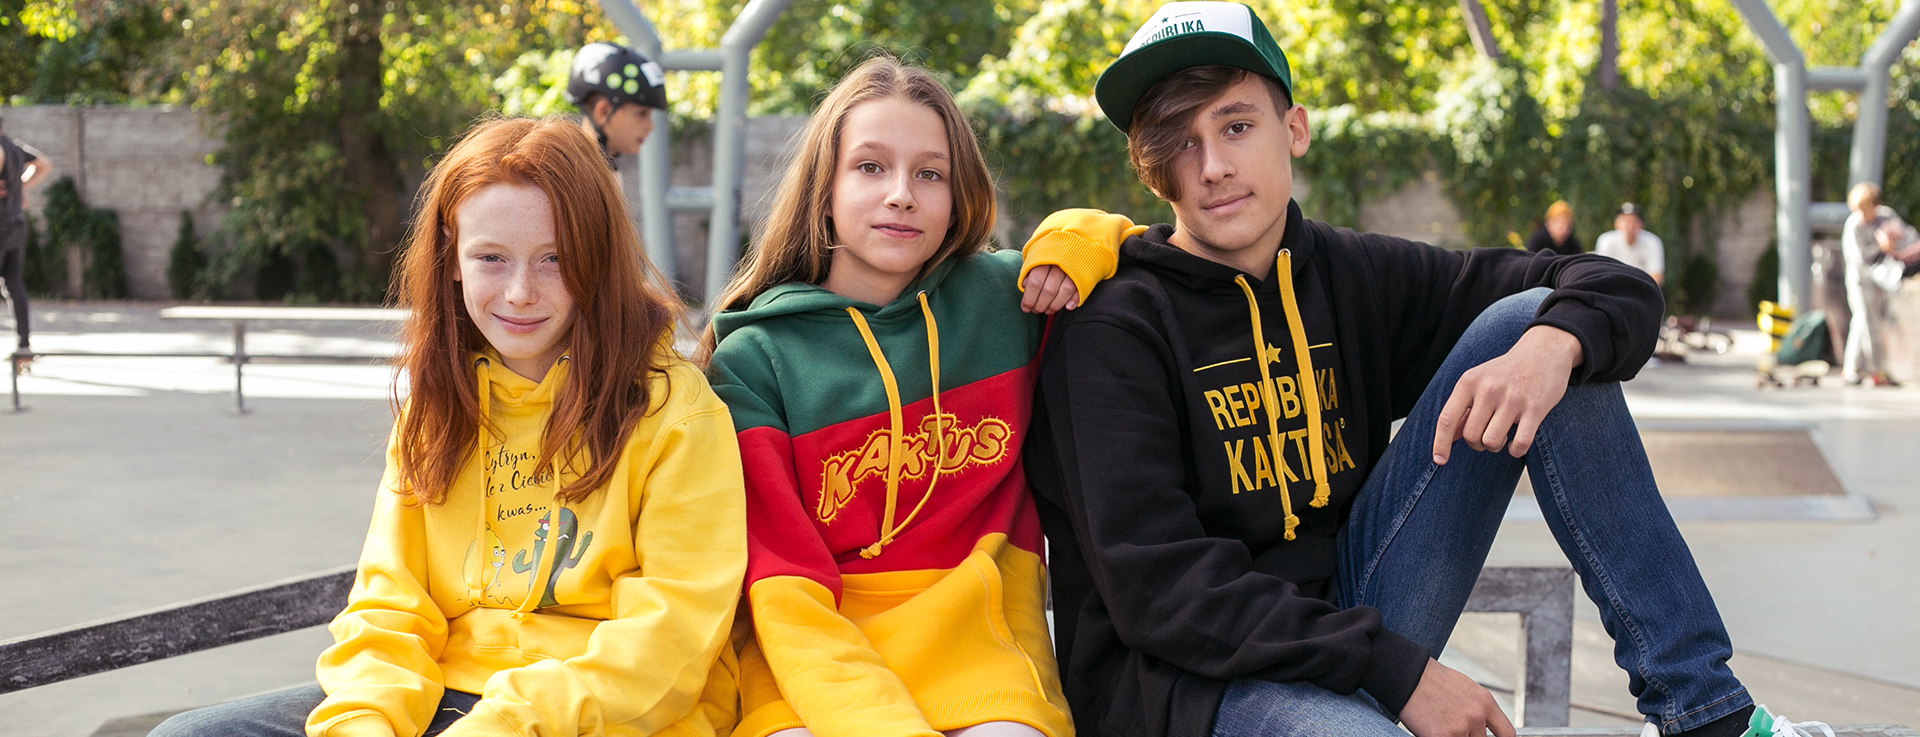 Kids wearing Kaktus Hoodies